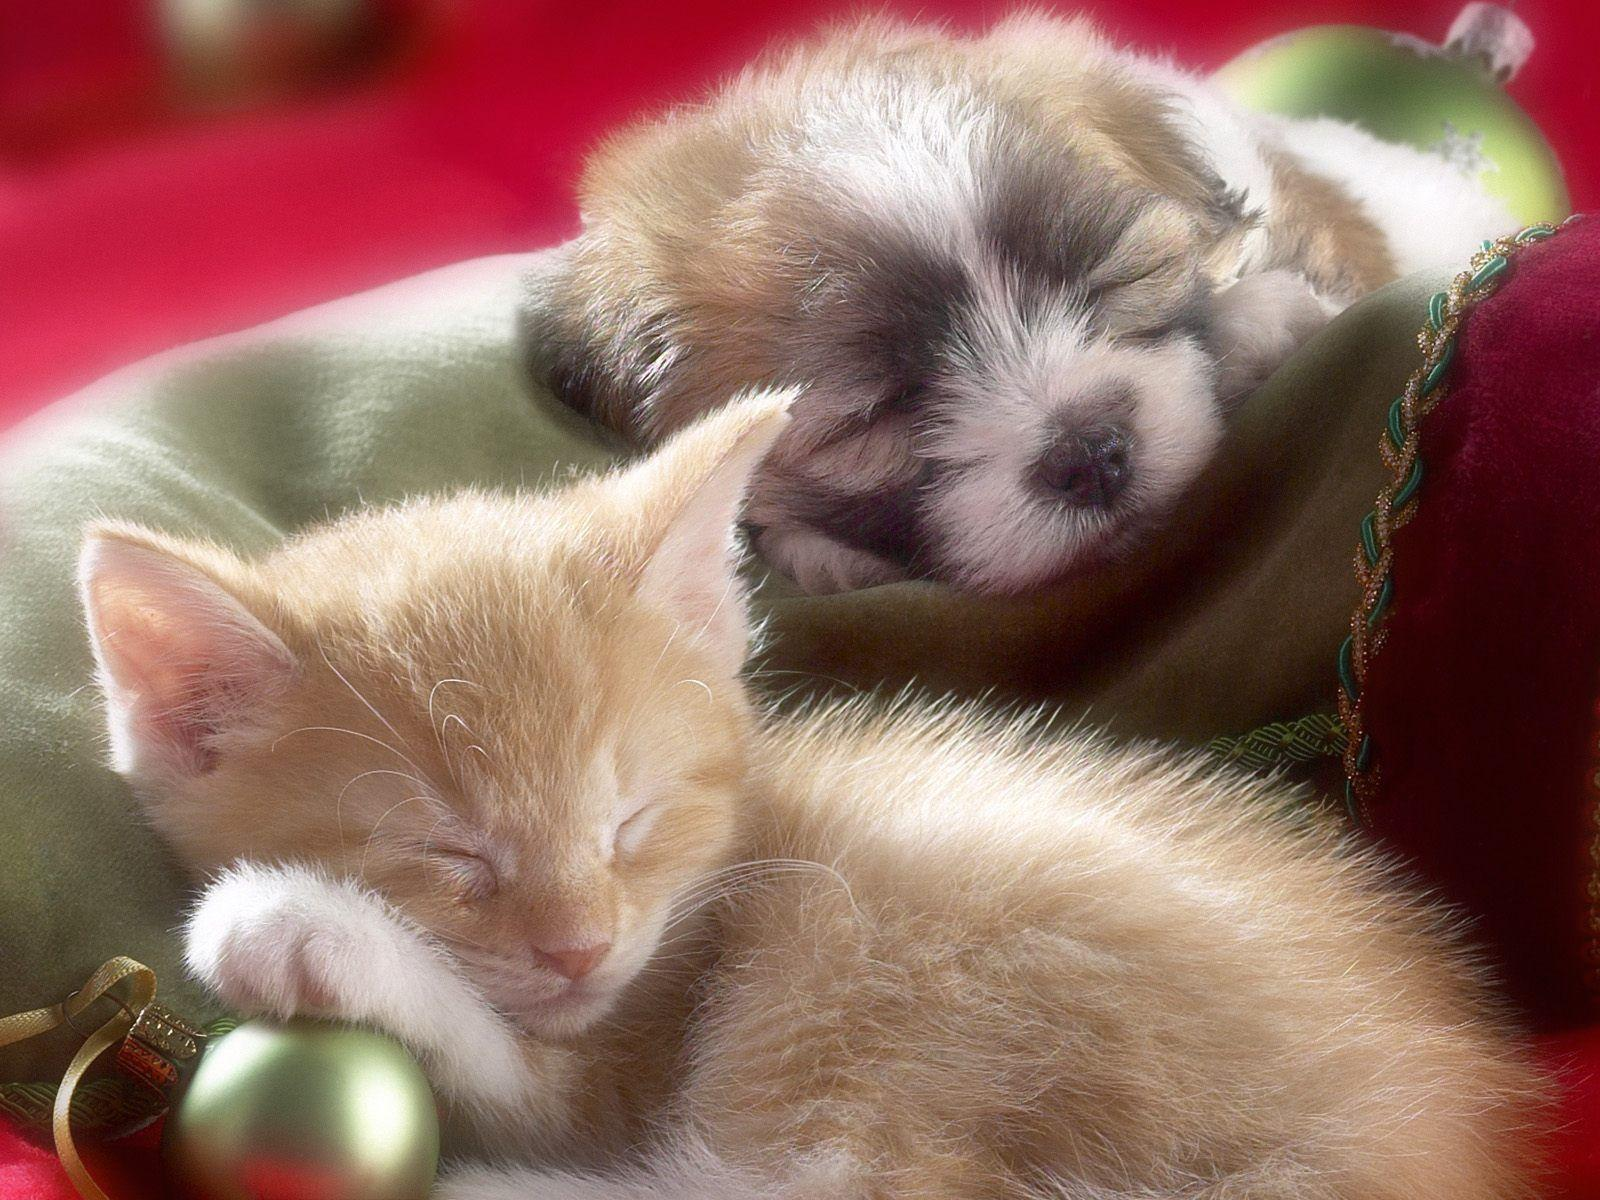 Cute Puppy And Kitten Wallpapers